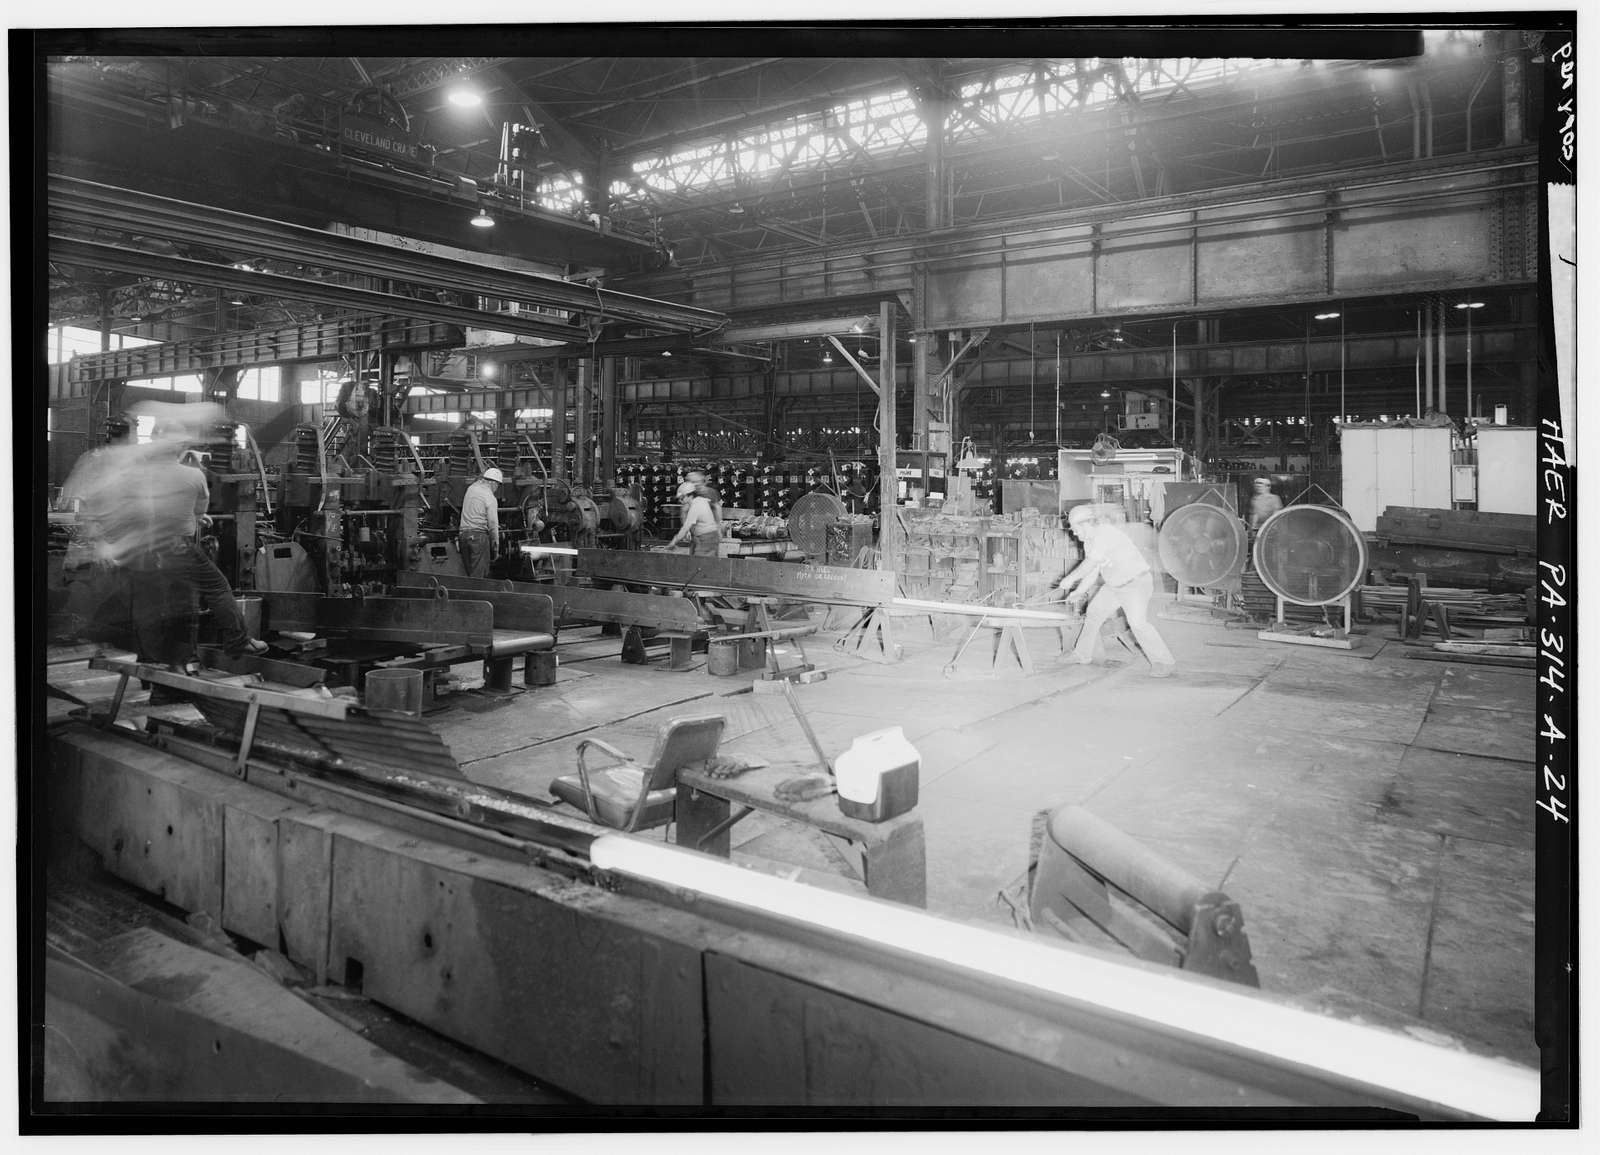 "Cambria Iron Company, Gautier Works, 12"" Mill, Clinton Street & Little Conemaugh River, Johnstown, Cambria County, PA"